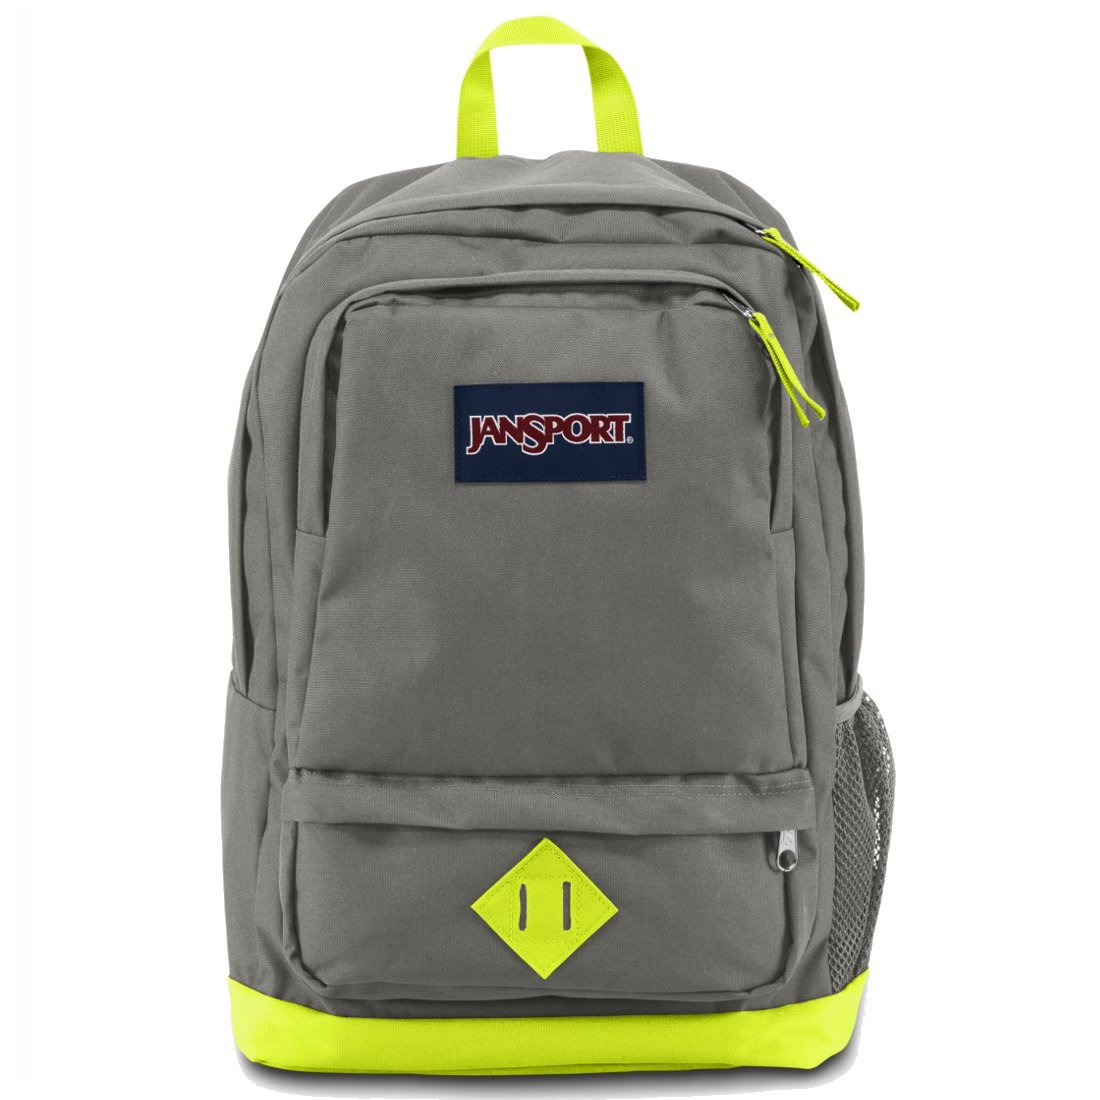 Are Jansport Backpacks Good nLqFoy2A